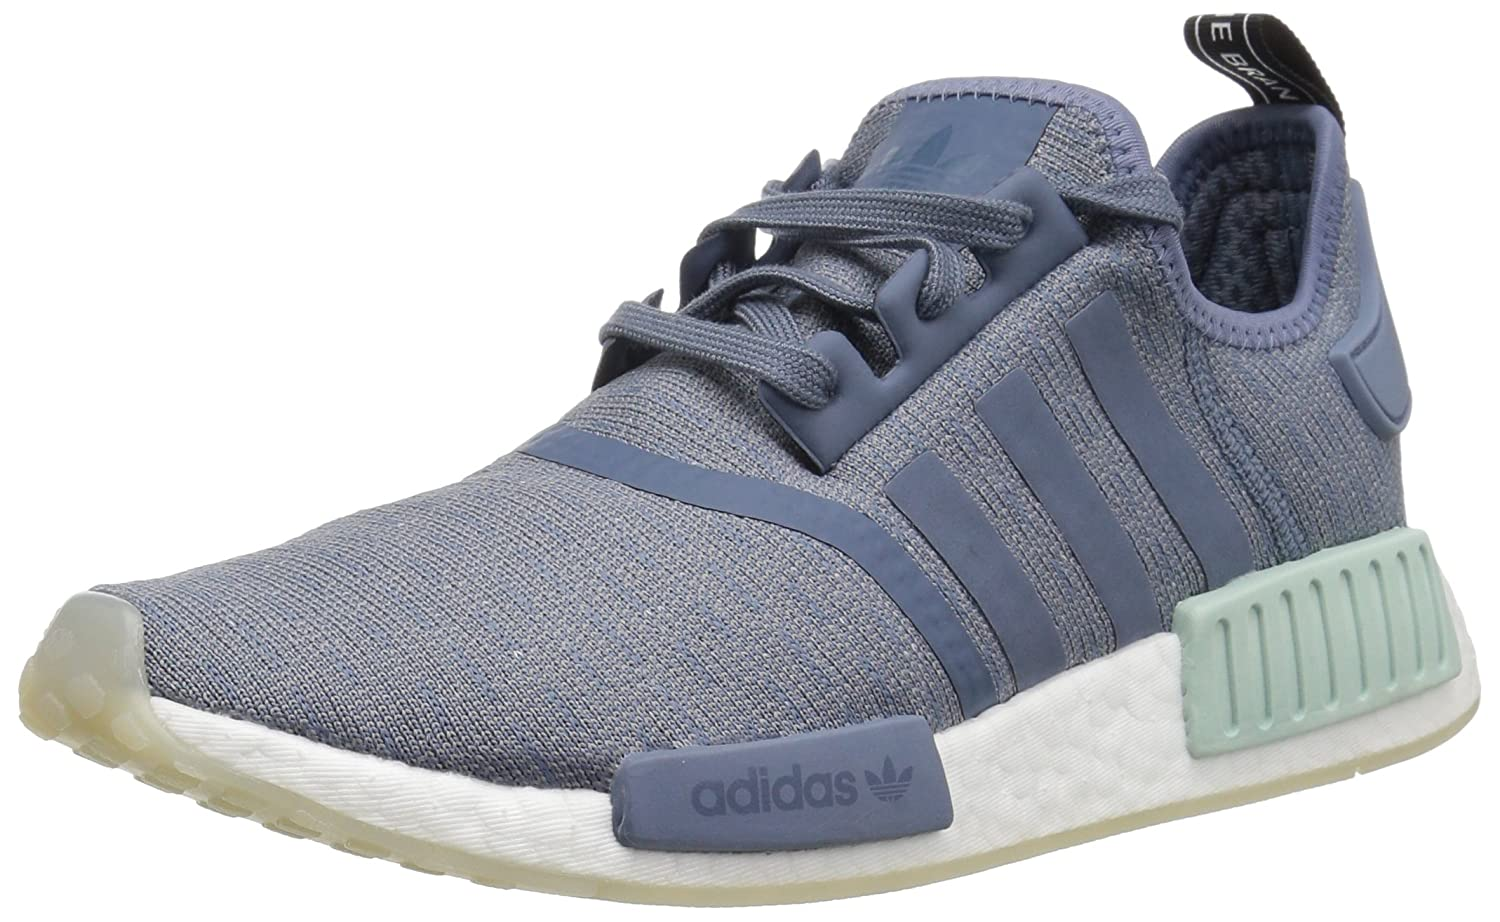 adidas Originals Women's NMD_r1 B07CCHBKY8 9.5 M US|Raw Steel/Raw Steel/White